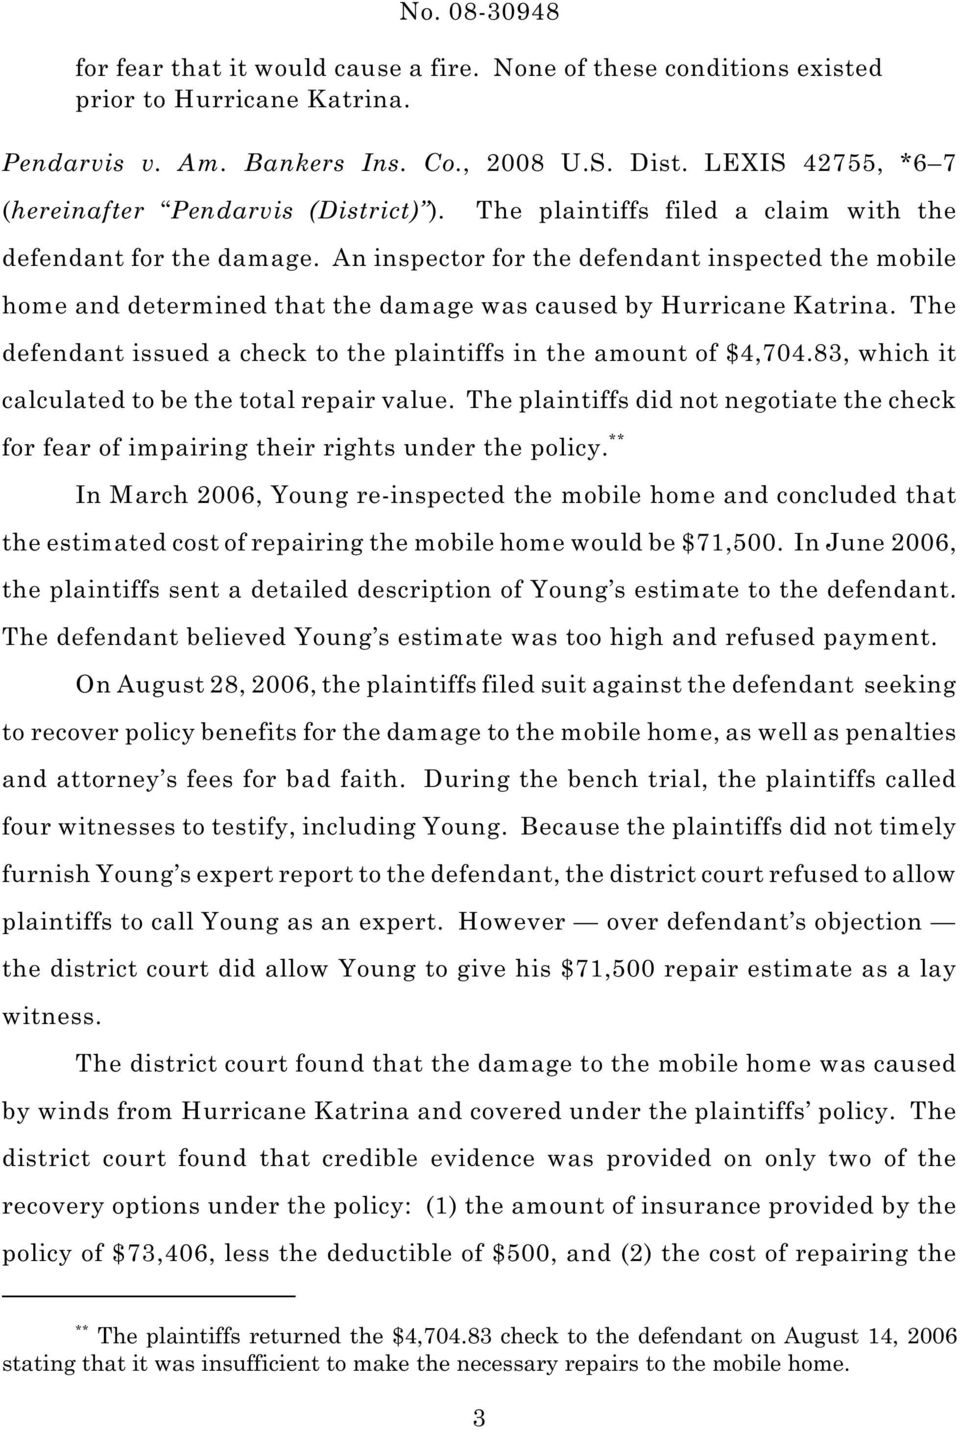 An inspector for the defendant inspected the mobile home and determined that the damage was caused by Hurricane Katrina. The defendant issued a check to the plaintiffs in the amount of $4,704.